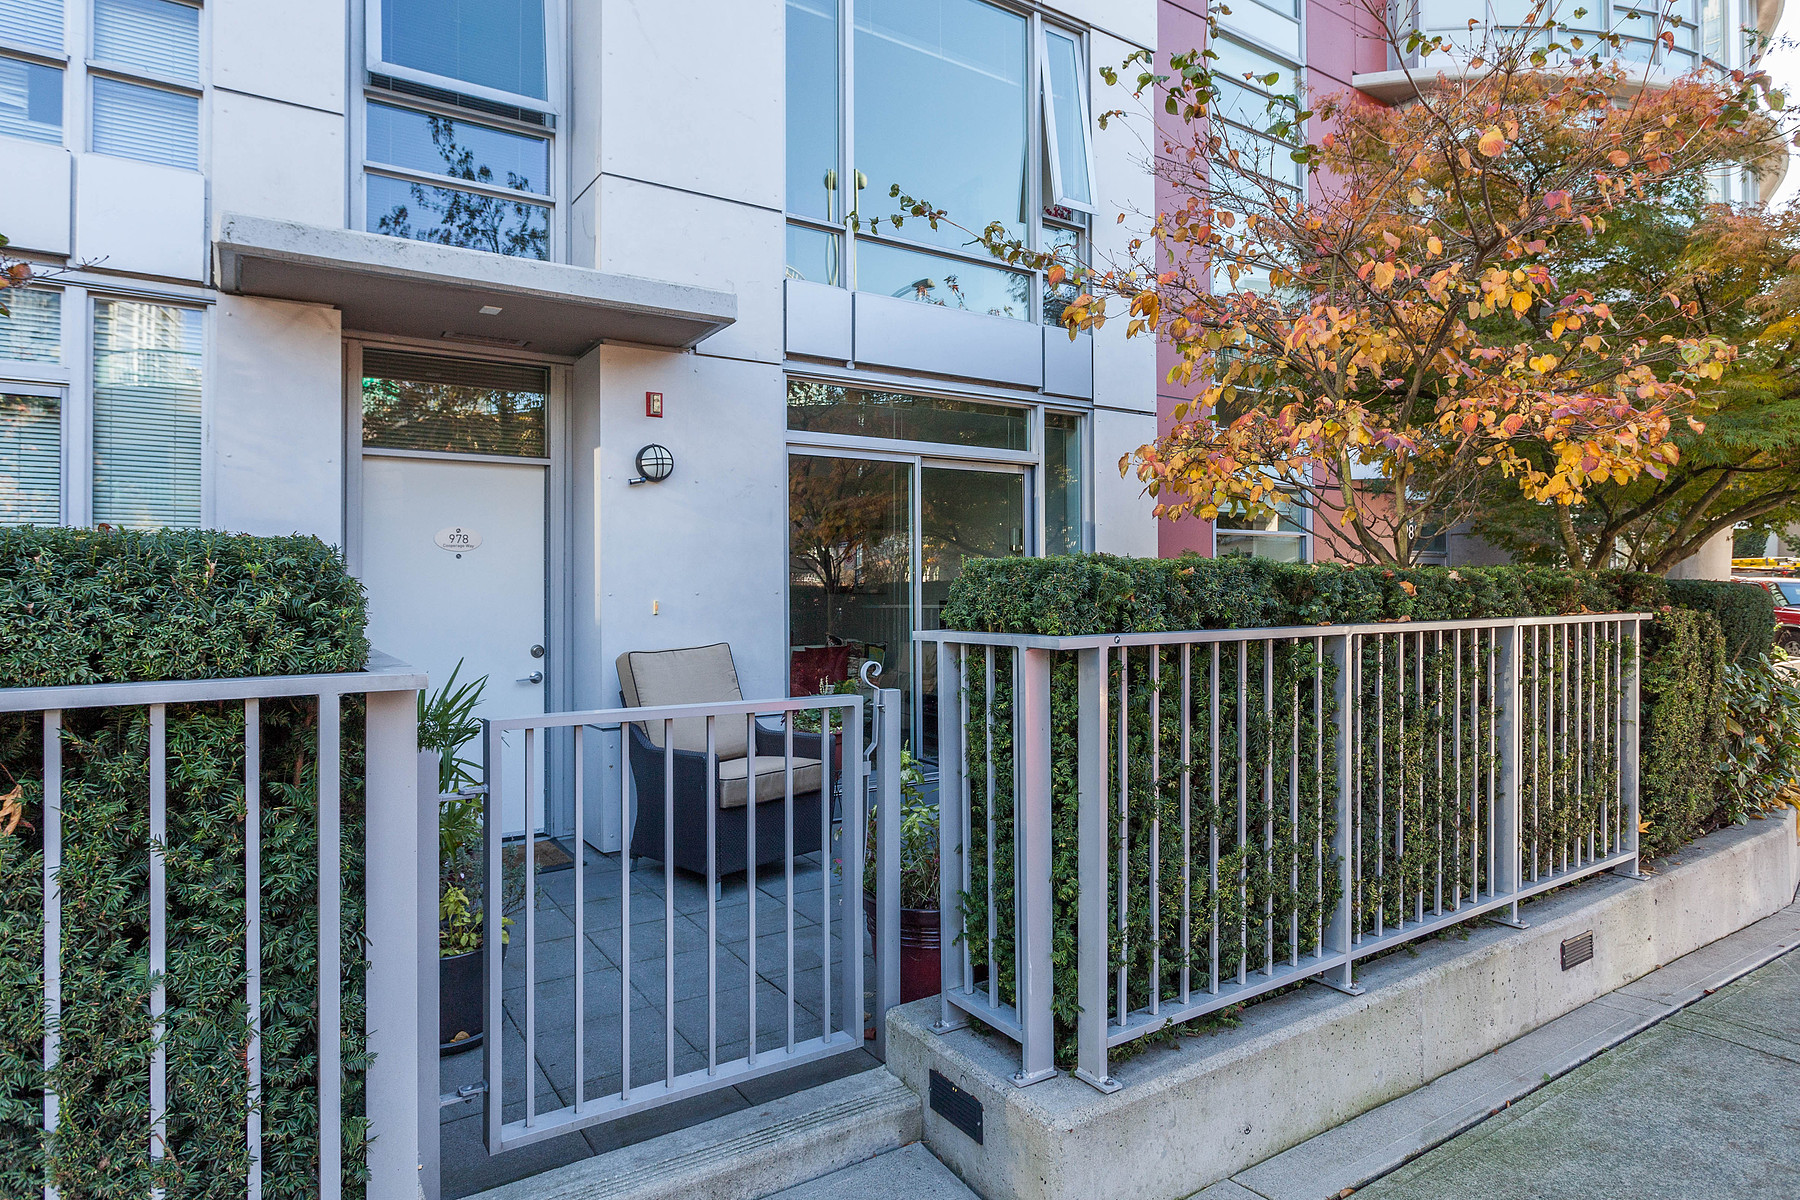 Townhouse for Sale at Beautiful Yaletown Townhome 978 Cooperage Way Vancouver, British Columbia V6B 0C3 Canada